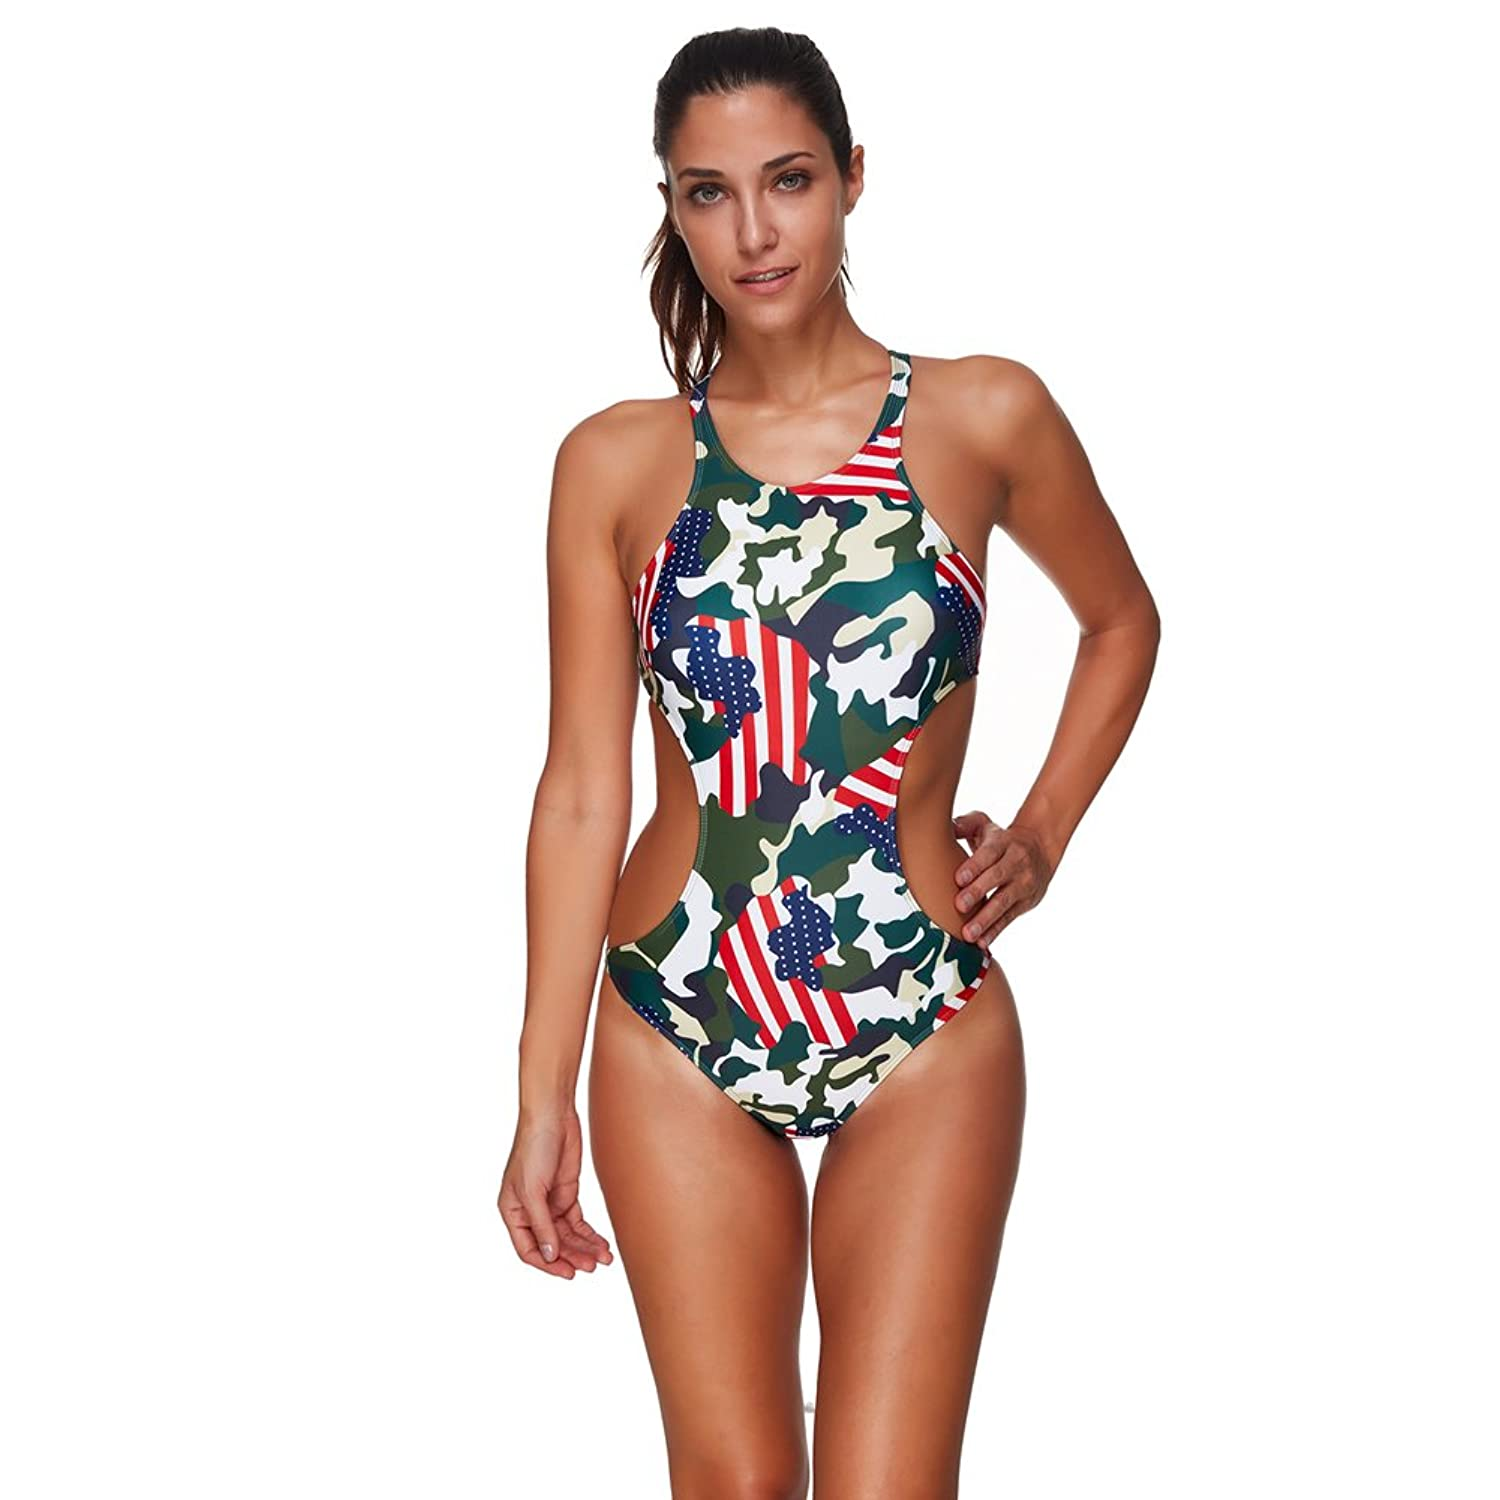 FeelinGirl Women's One Piece Bikini Dress Beachwear Swimsuit